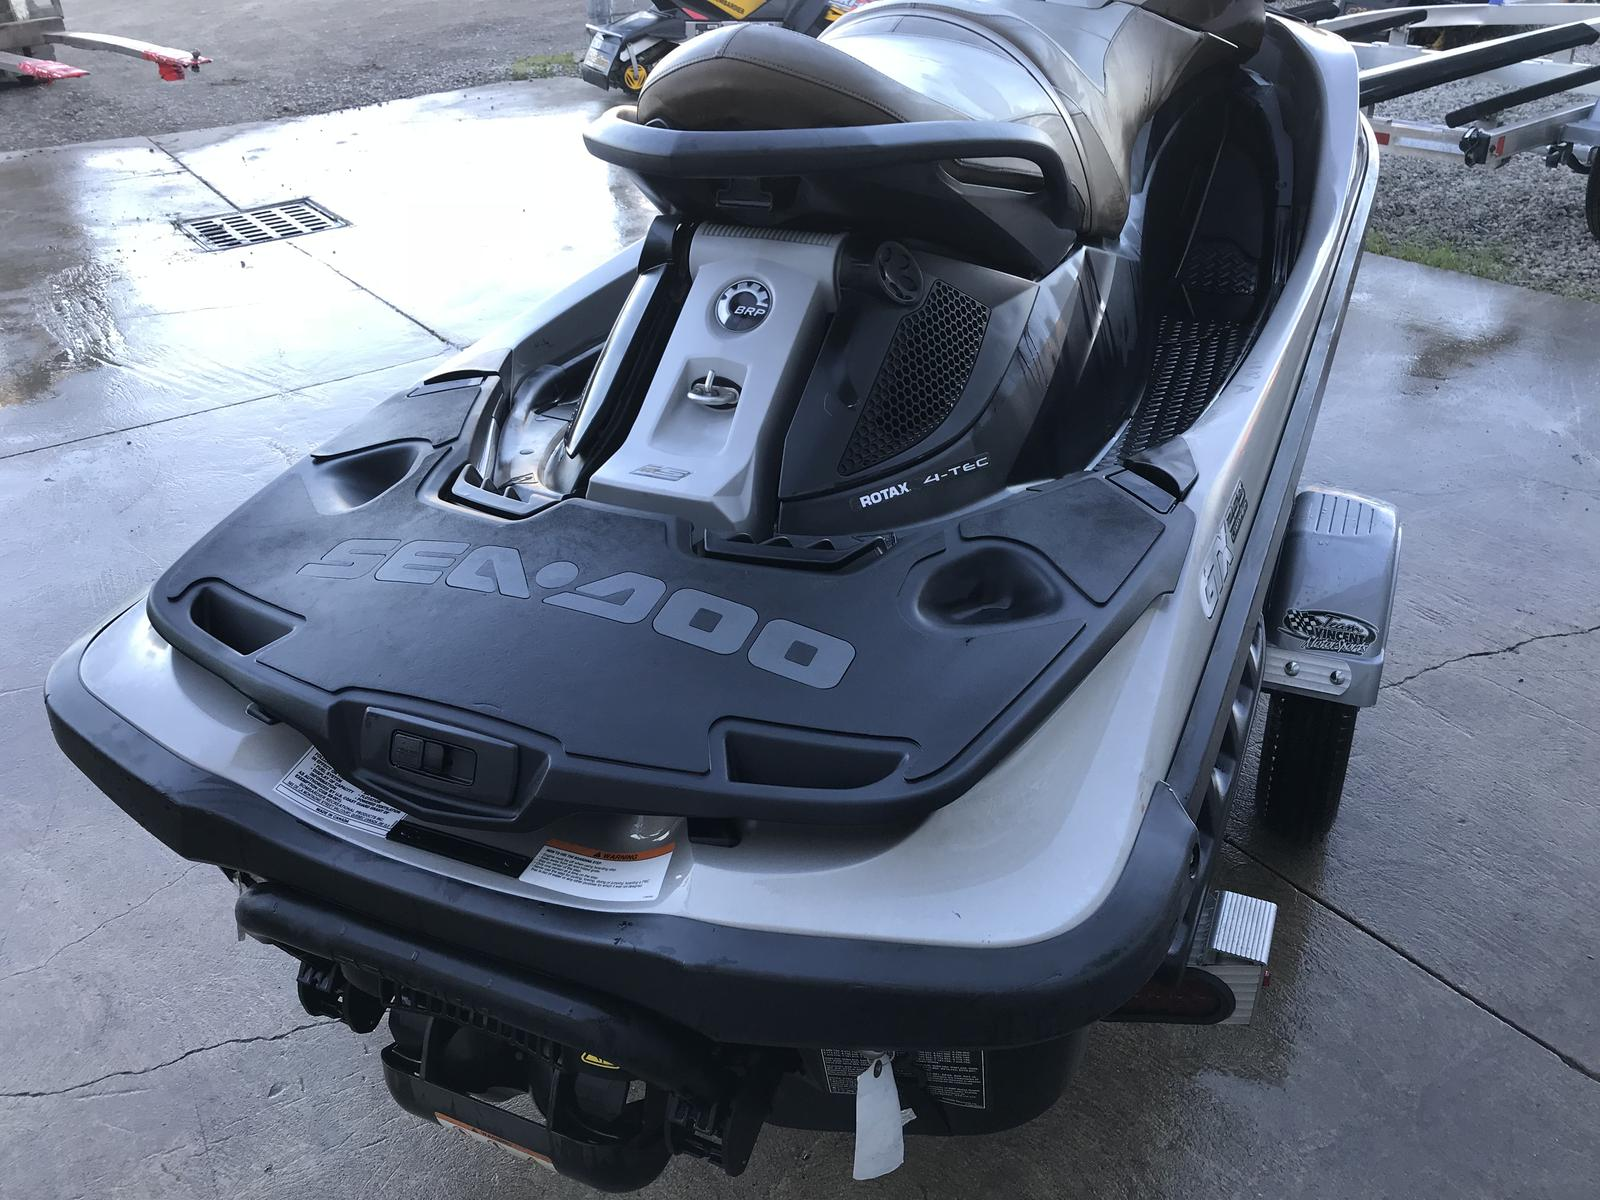 2009 Sea-Doo GTX LIMITED IS 255 for sale in Ayr, ON  Team Vincent